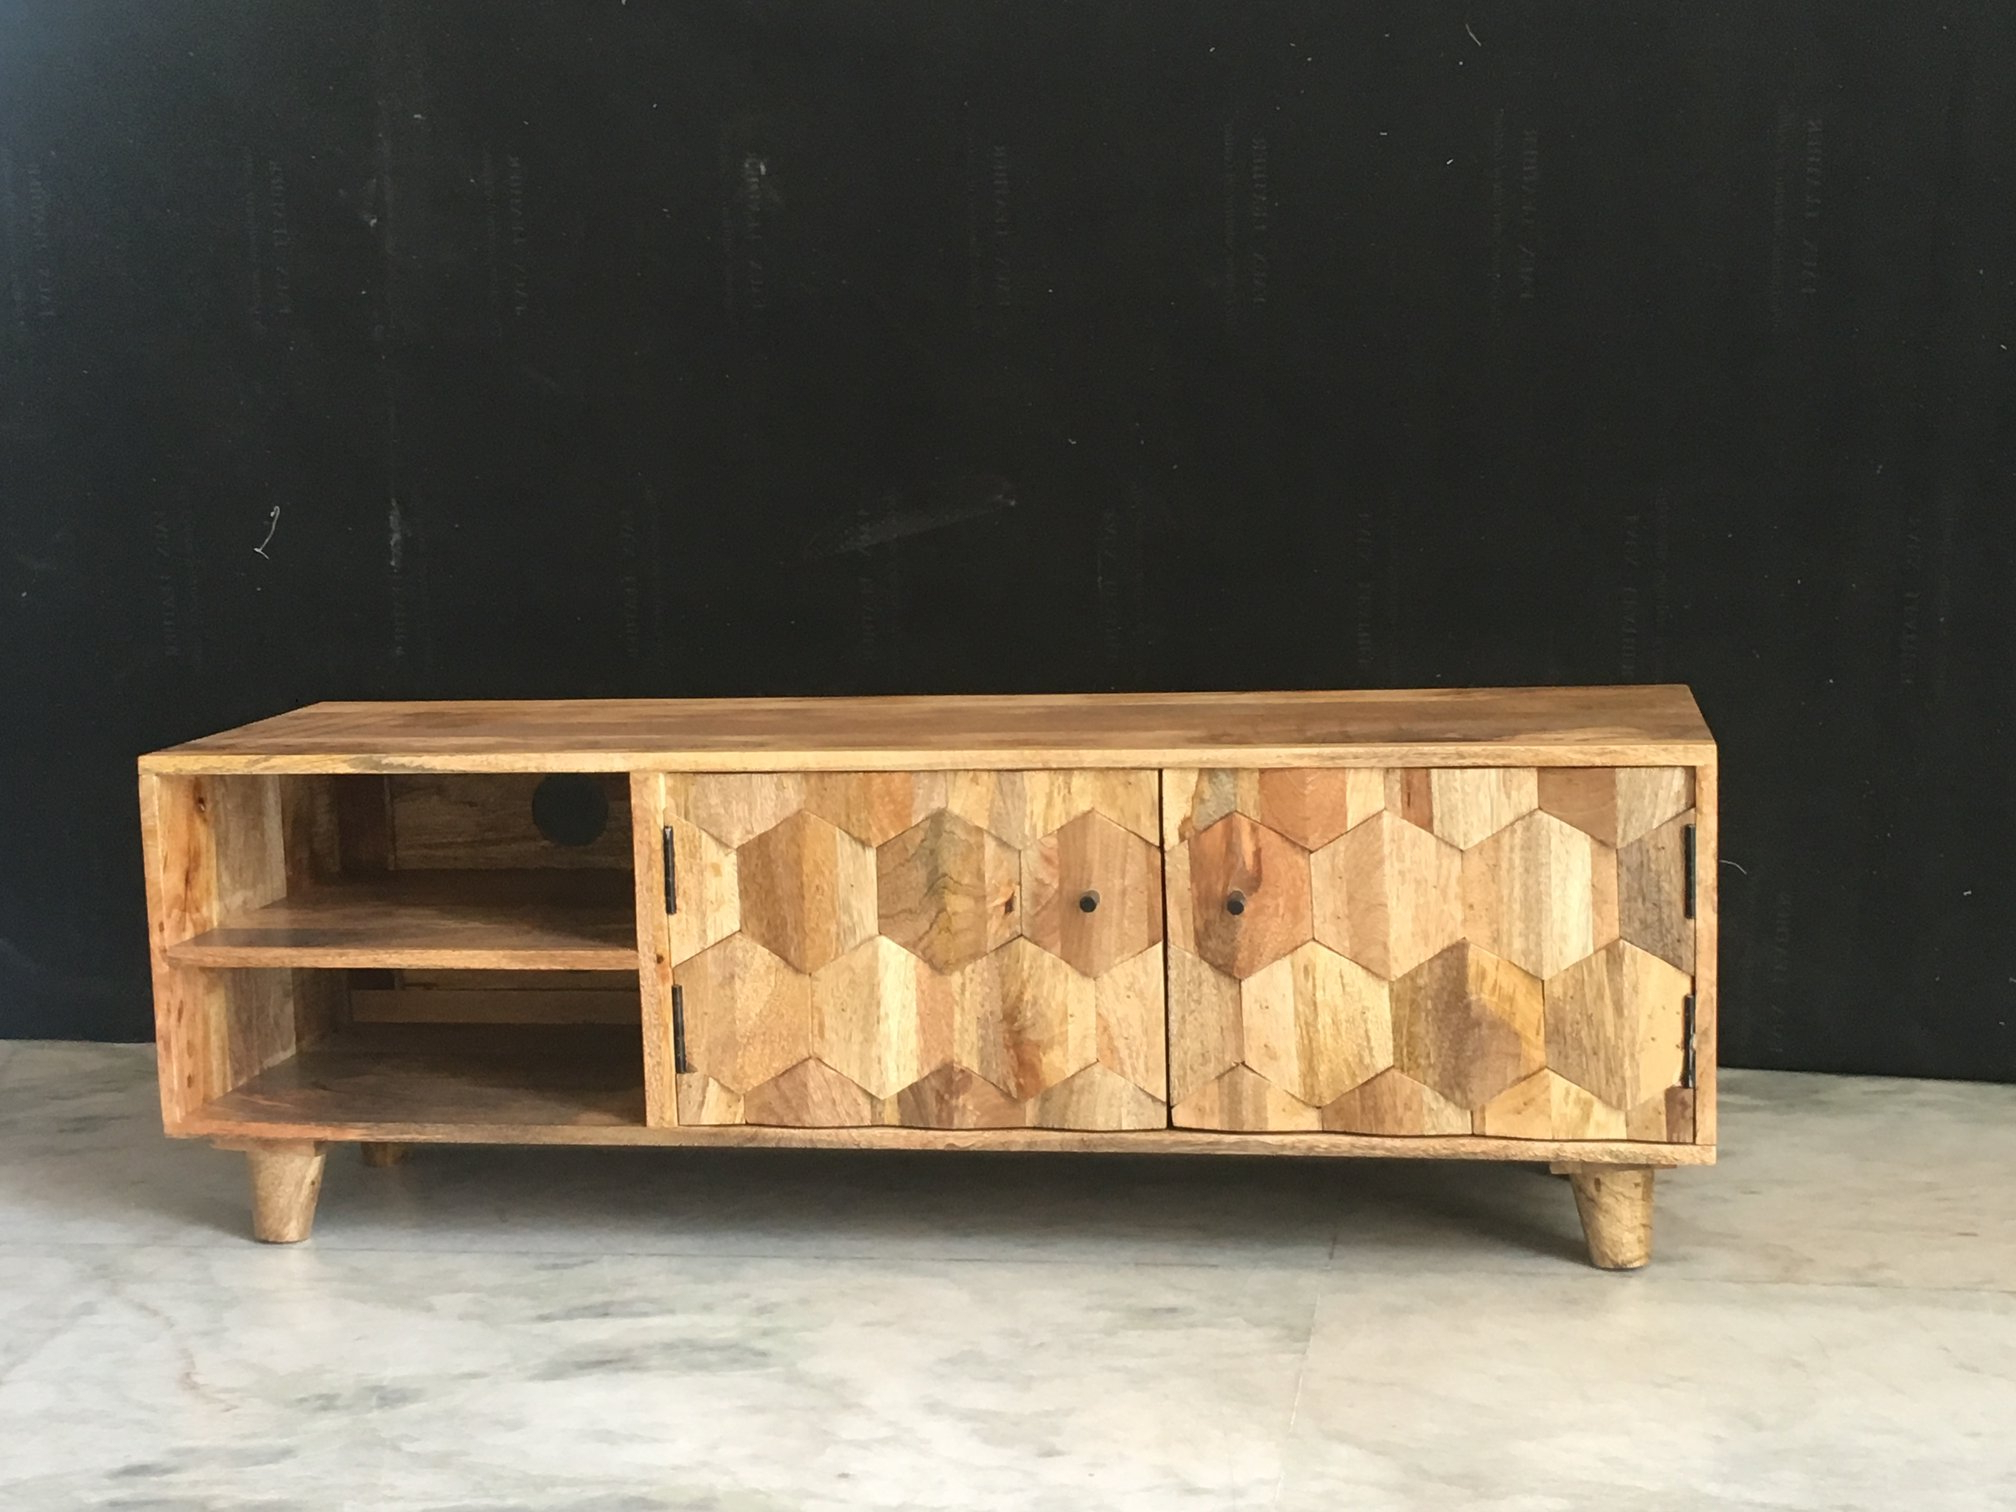 Most Recently Released Mango Tv Stands In Light Mango Wood Tv Stand / Media Unit With Hexagonal Patterns (Gallery 8 of 20)